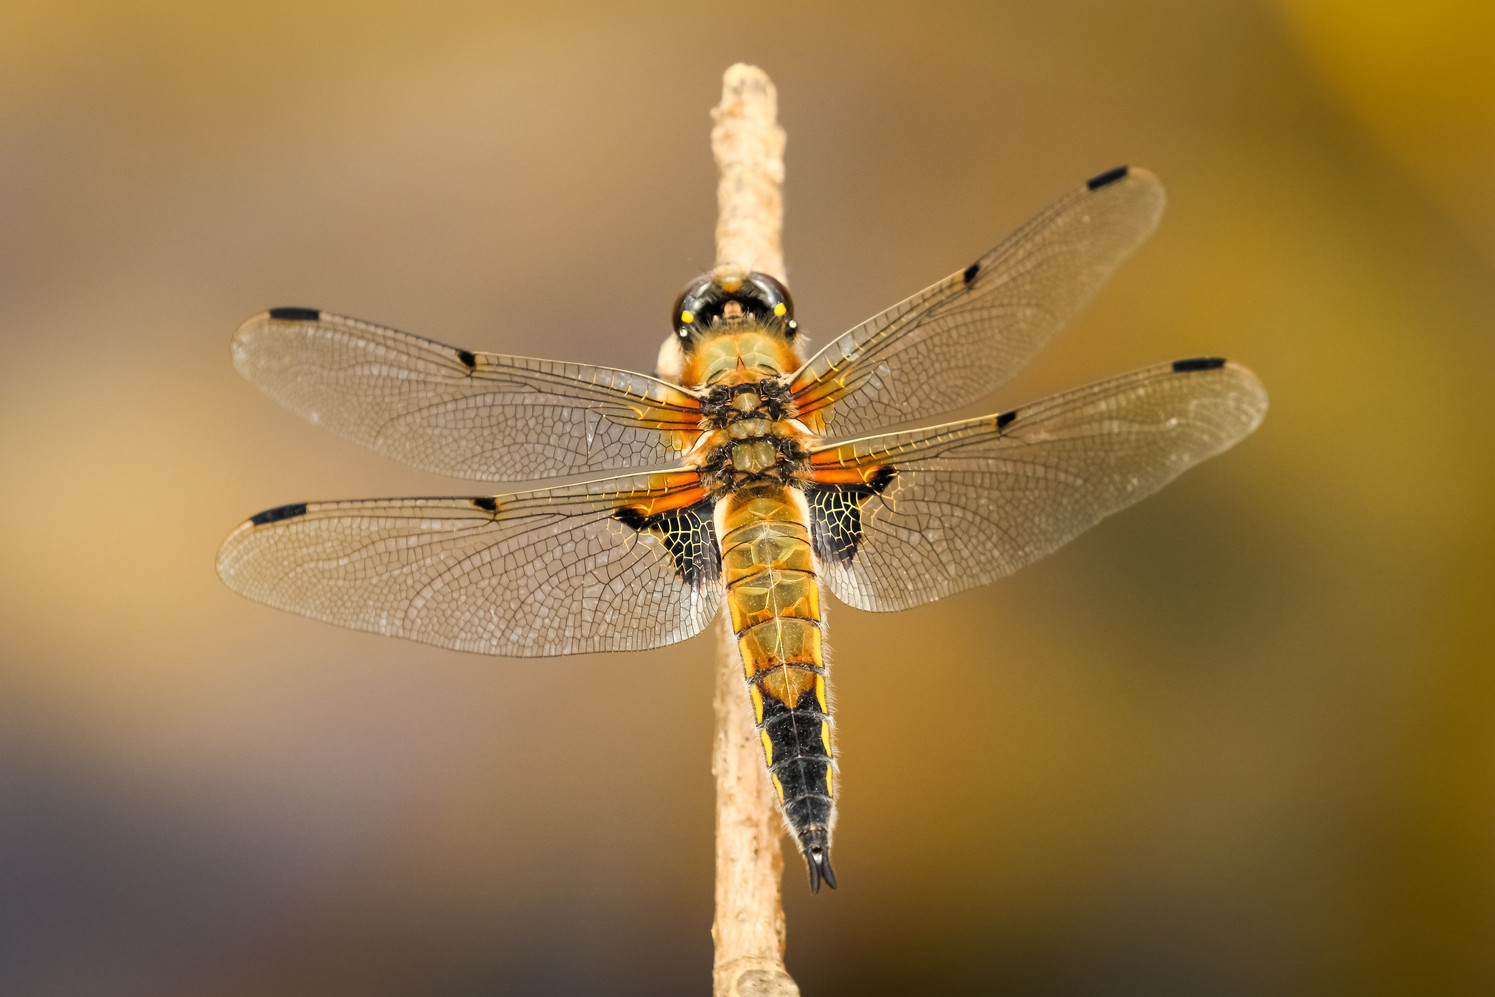 1st Place - Four Spotted Chaser Dragonfly by Ron Bowe